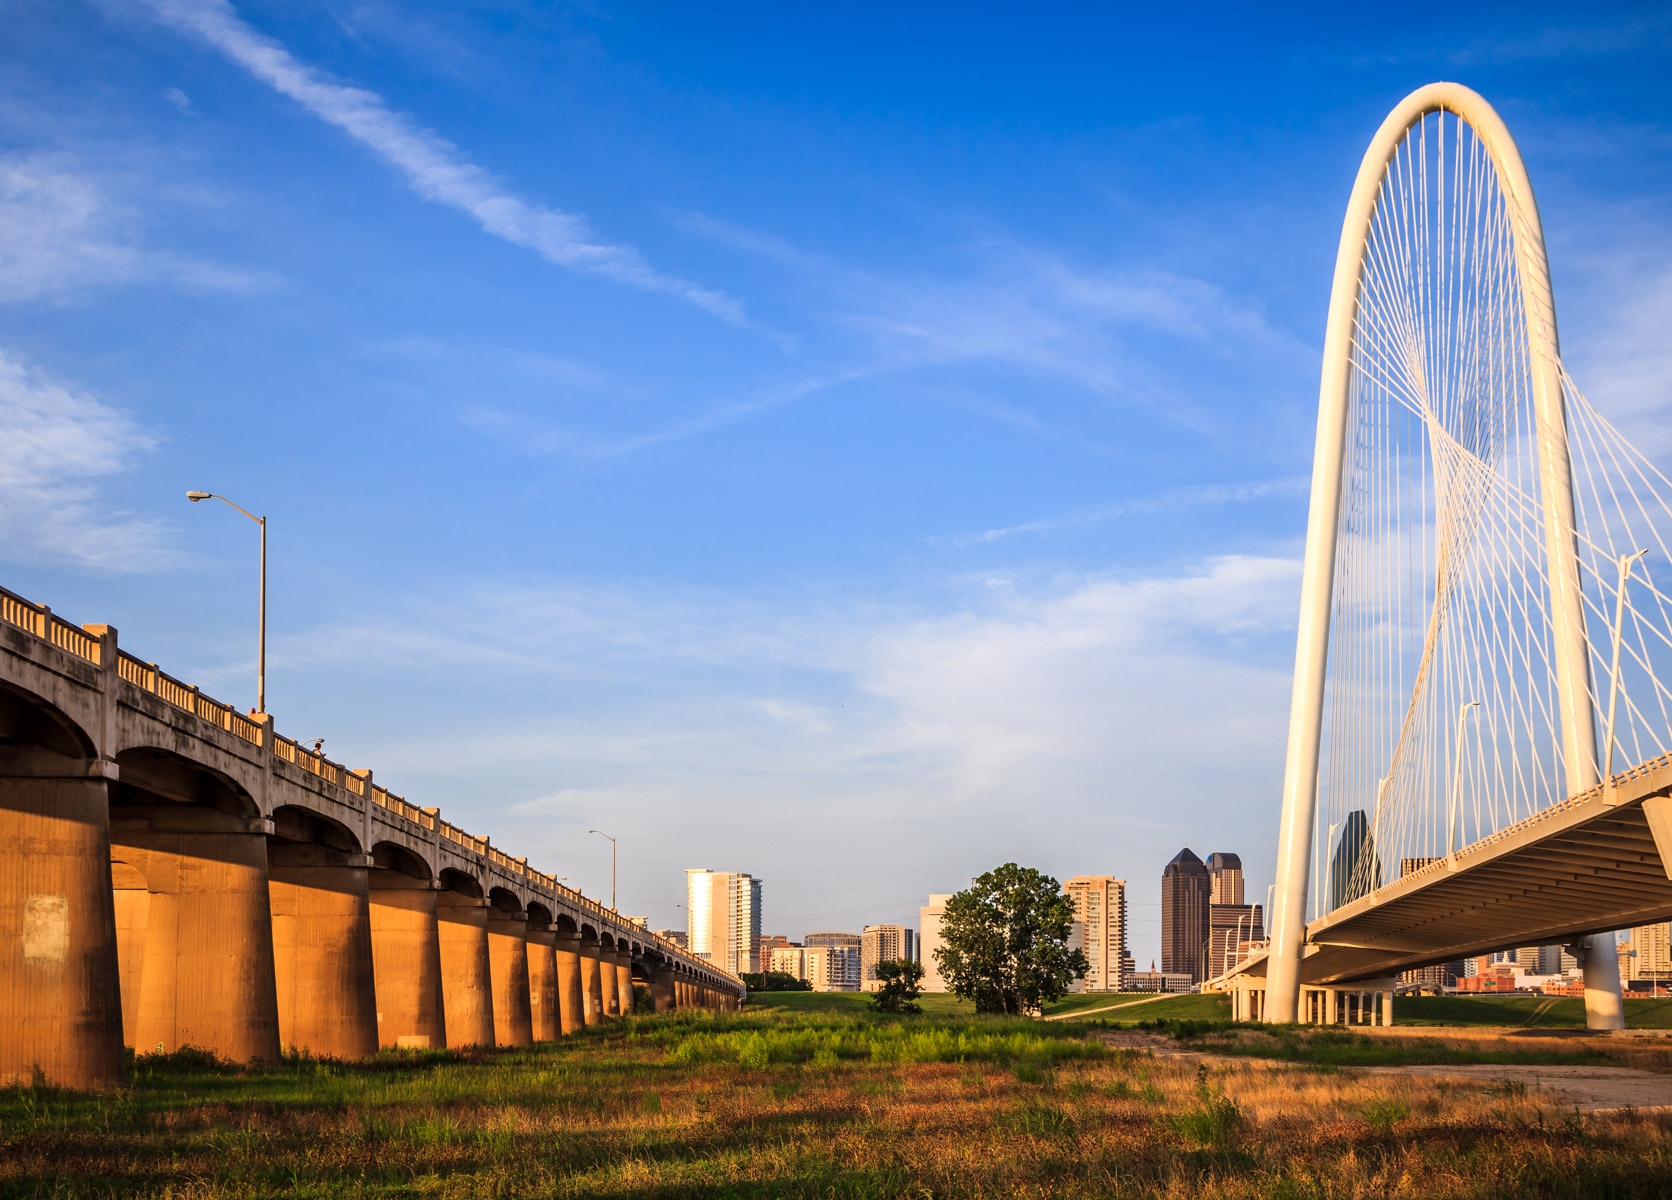 Dallas' Continental Avenue Viaduct (on the left) and Margaret Hunt Hill Bridge (right) span the Trinity River floodplain just west of downtown.